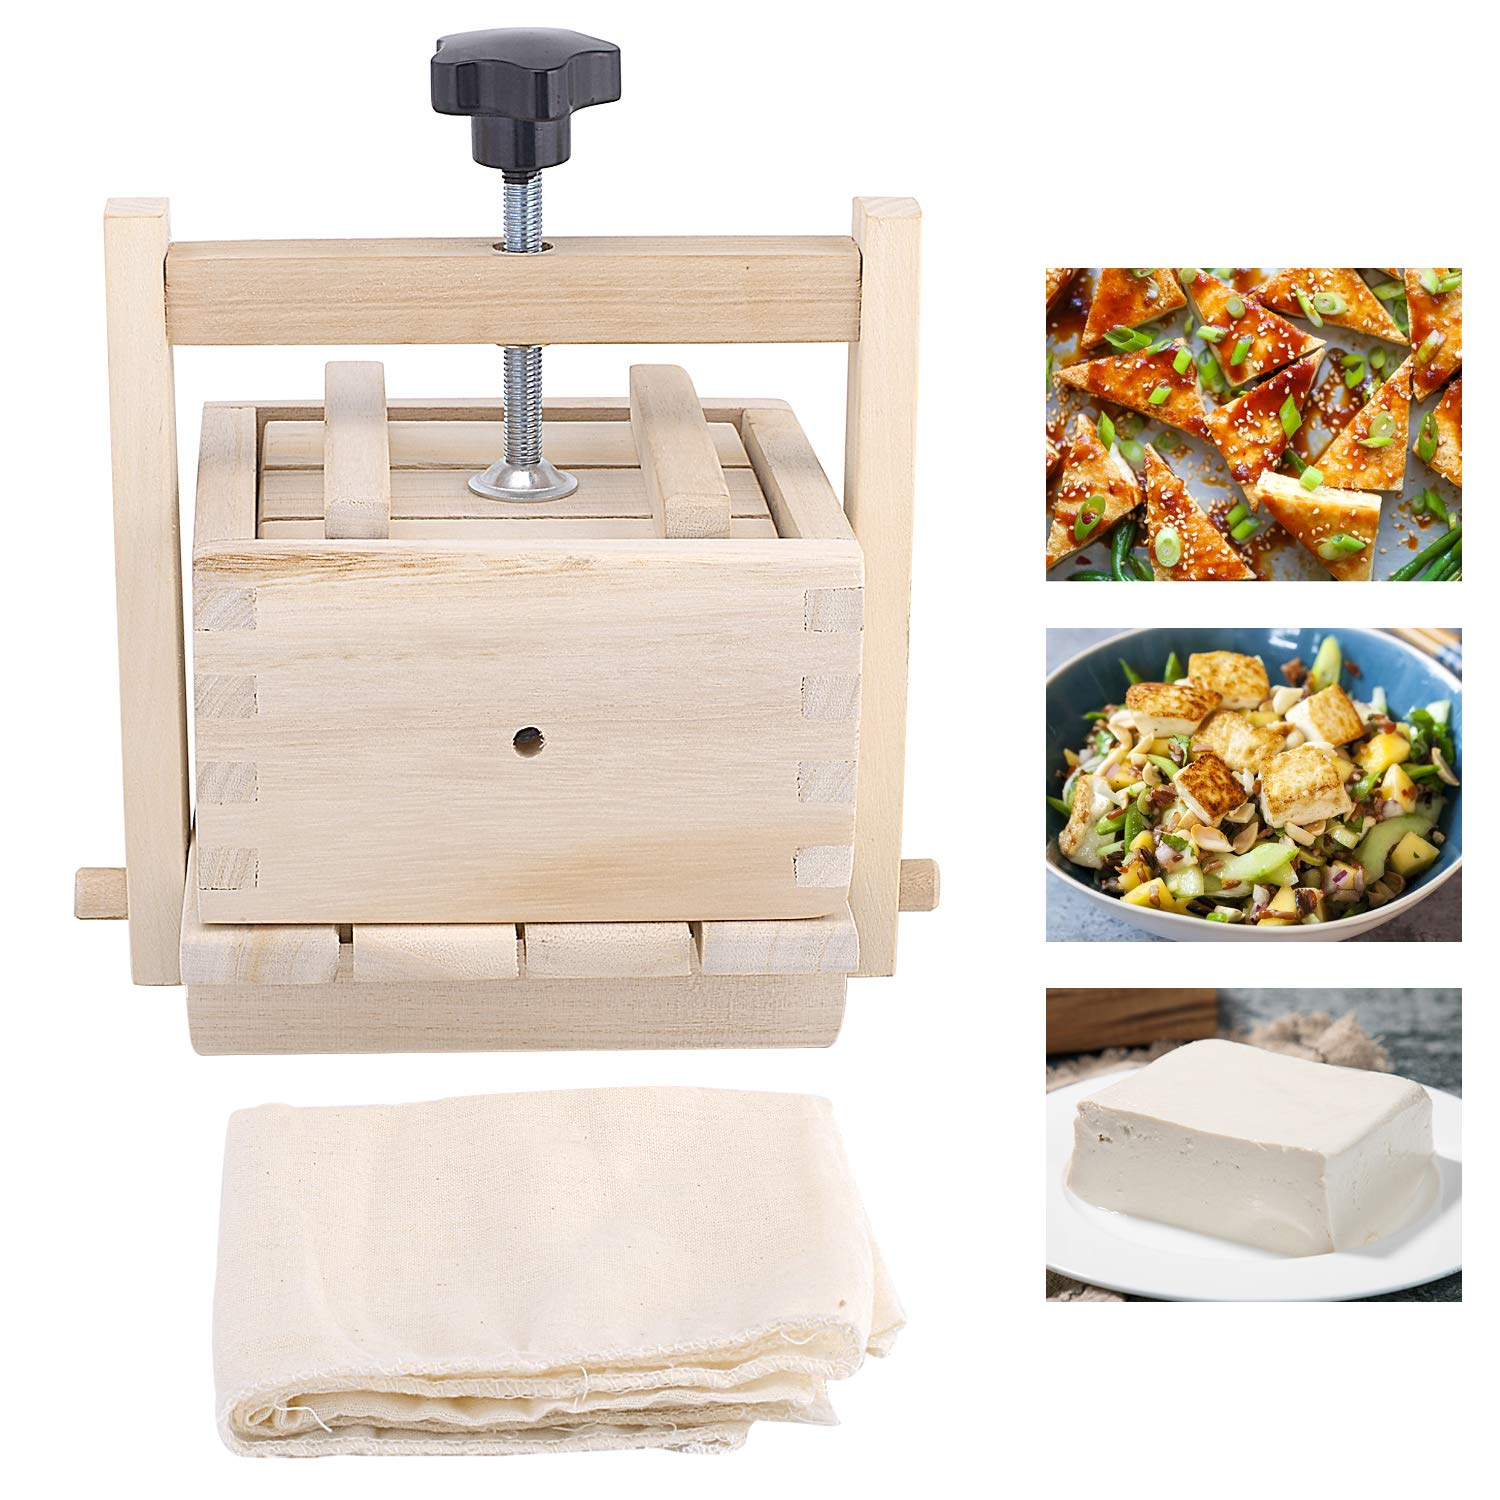 Inkesky Tofu Maker & Press, 2-In-1 Kit, Made Of Wood by Inkesky